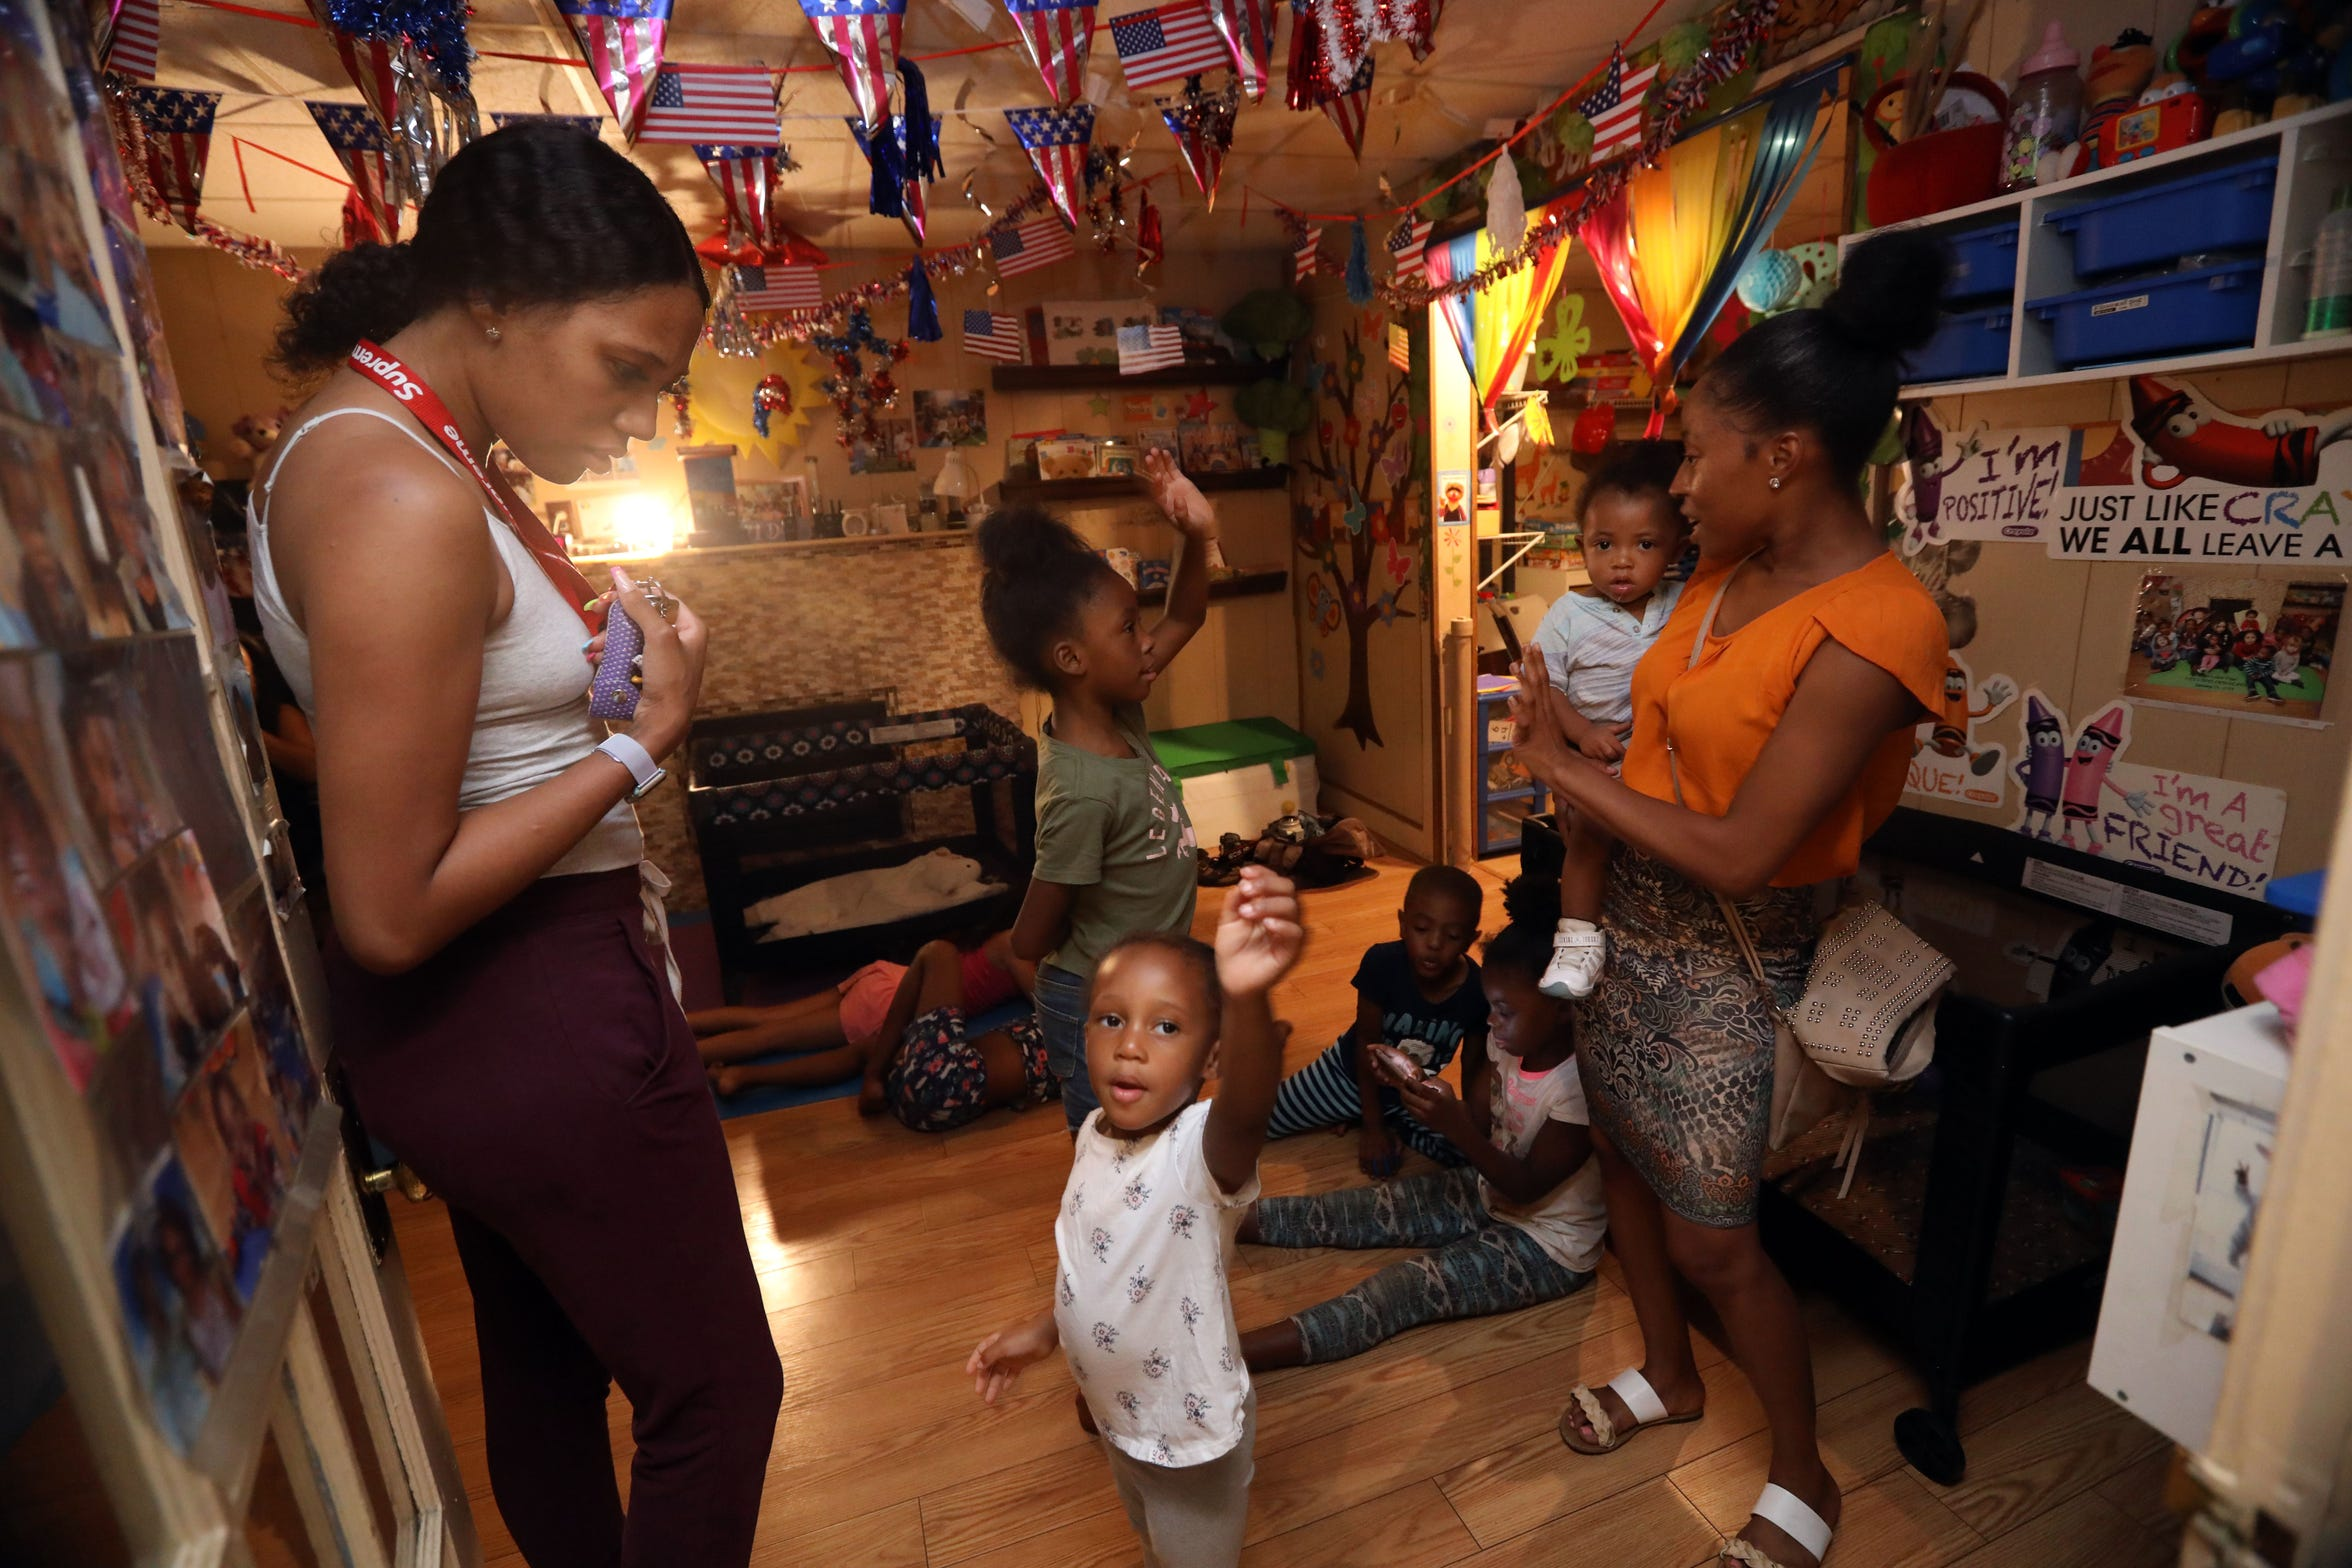 Brittney Foster, left, and Chanelle Hall pick up their children at Dee's Tots Child Care in New Rochelle after working evening shifts Aug. 15, 2019. The family-run day care offers late and overnight care for children whose parents work late hours.